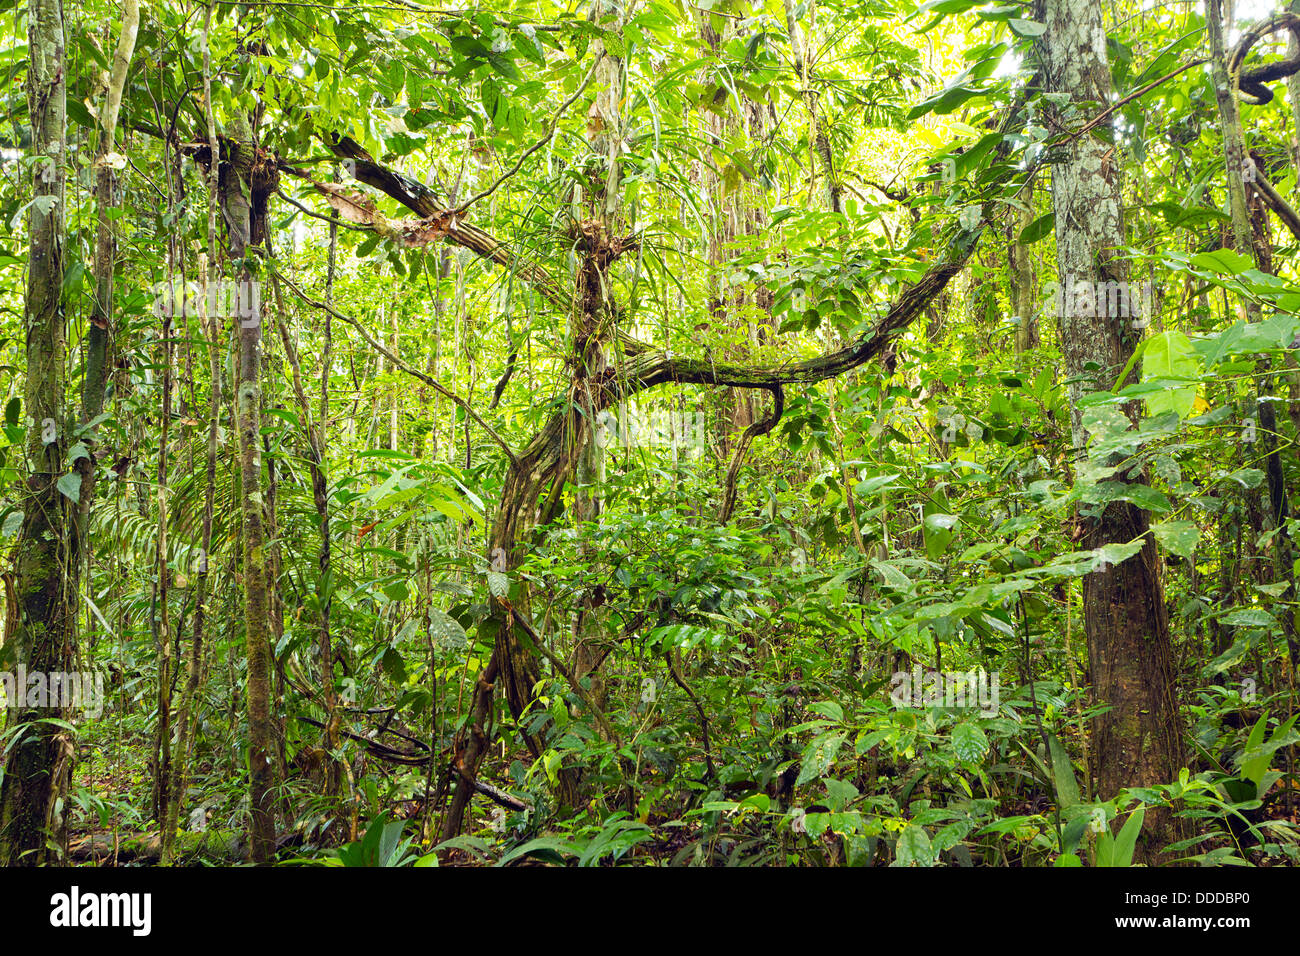 Tangle of lianas in the rainforest understory Ecuador - Stock Image & Lianas Amazon Stock Photos u0026 Lianas Amazon Stock Images - Alamy